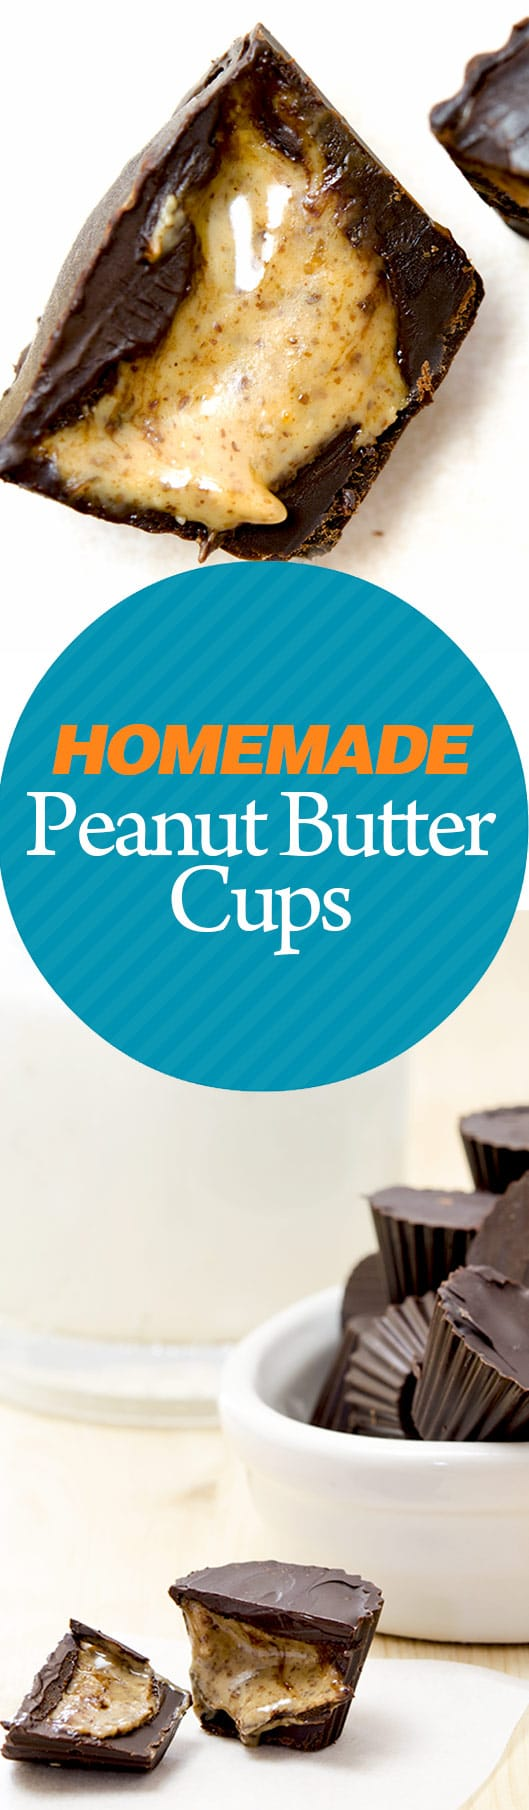 This recipe for homemade peanut butter cups is incredibly easy and ...